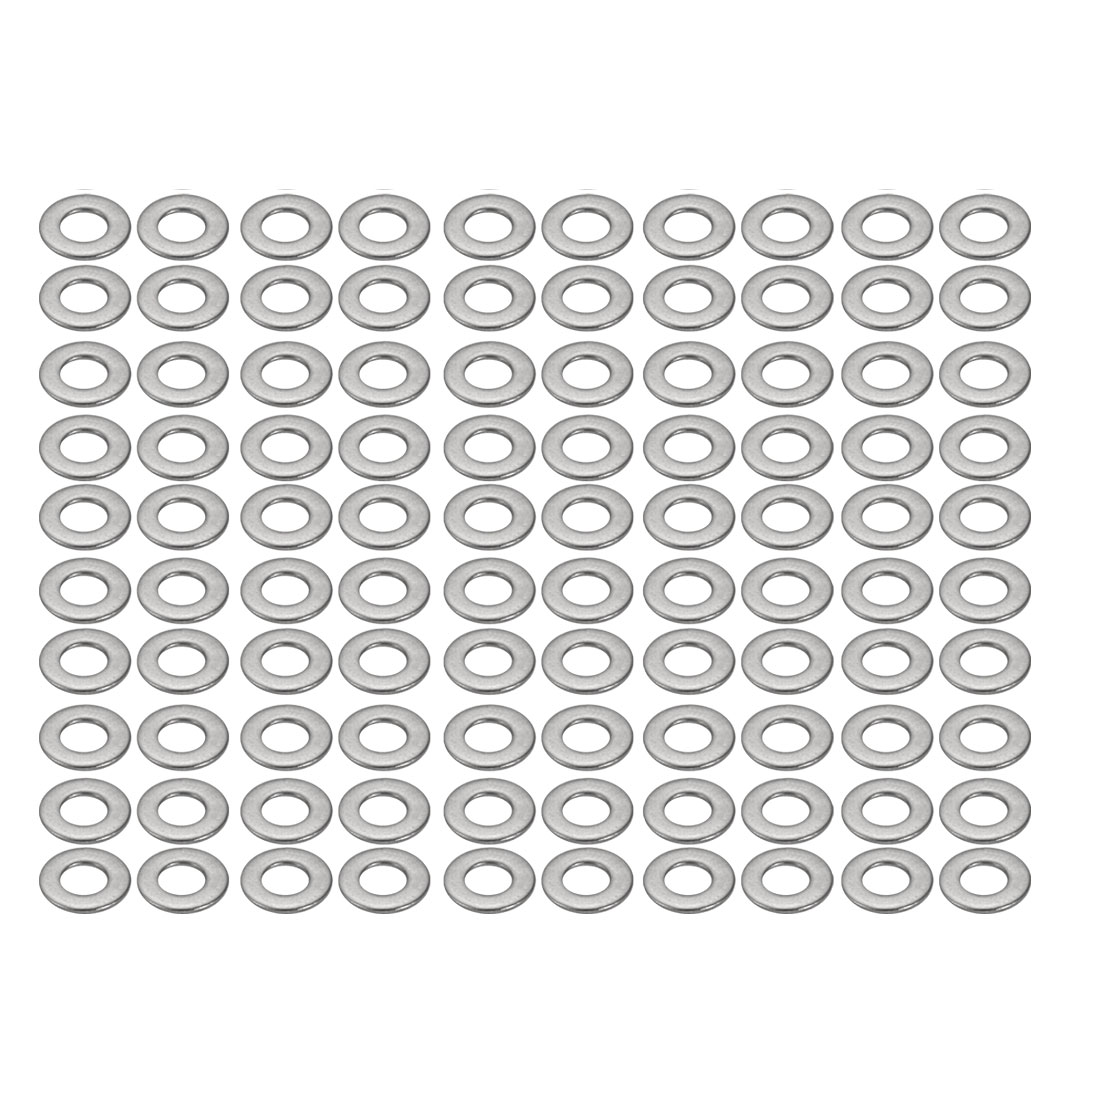 M3x7mmx0.5mm DIN125 316 Stainless Steel Flat Washer Silver Tone 100pcs